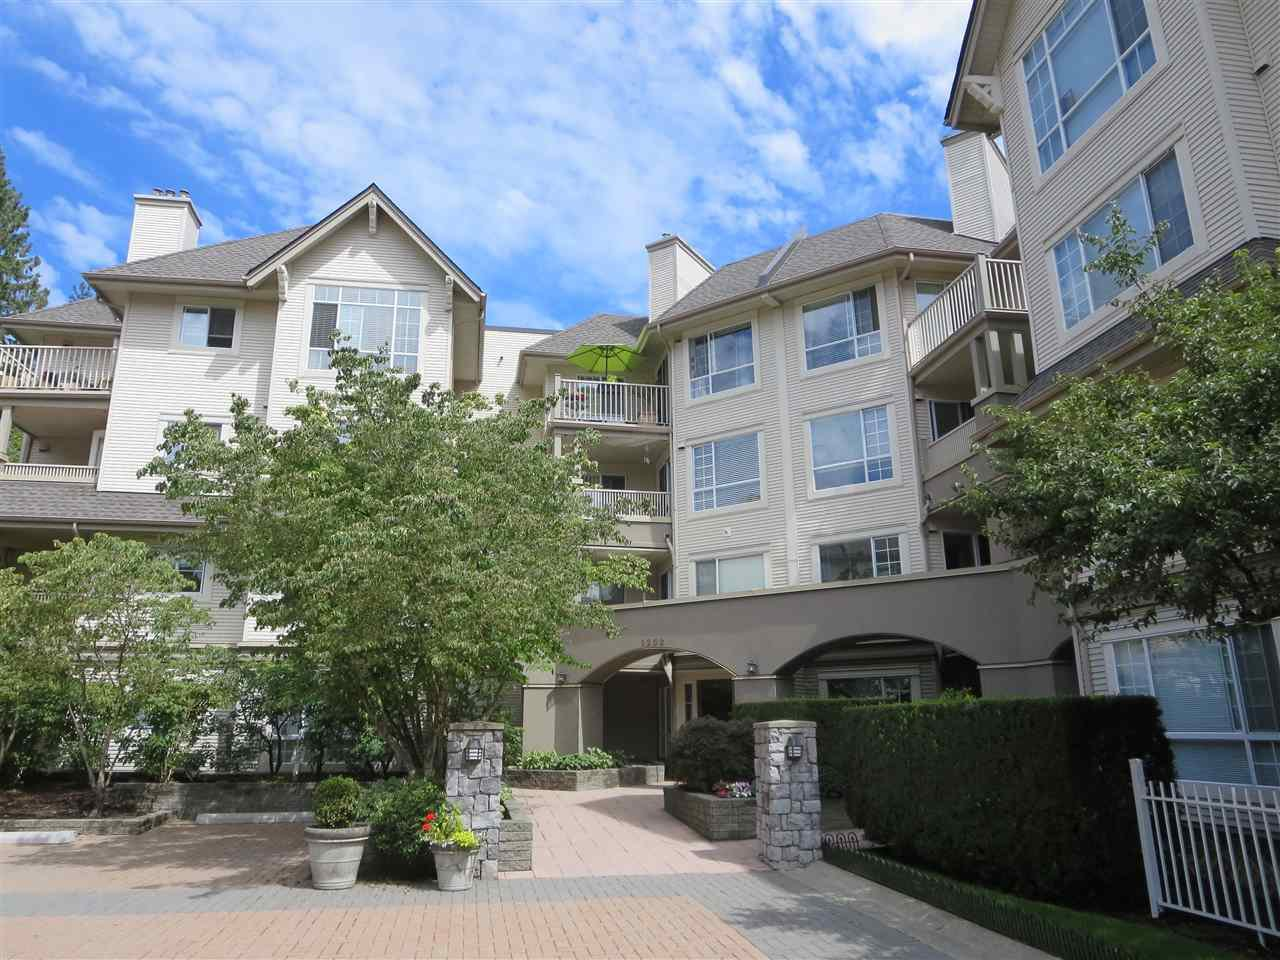 Main Photo: 228 1252 TOWN CENTRE Boulevard in Coquitlam: Canyon Springs Condo for sale : MLS®# R2094814